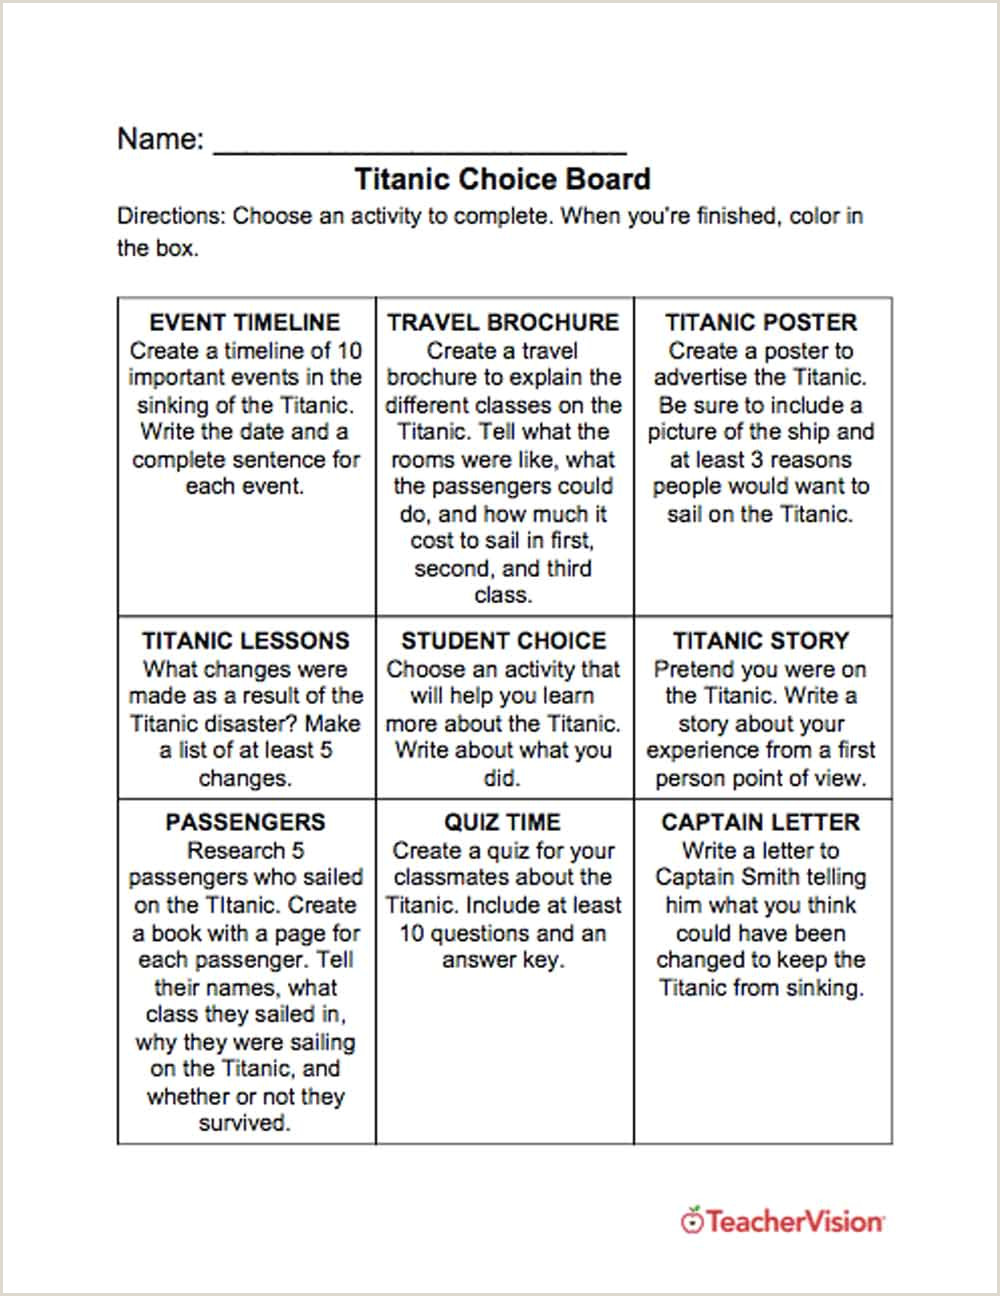 Single Point Lesson Template Graphic organizers for Teachers Grades K 12 Teachervision